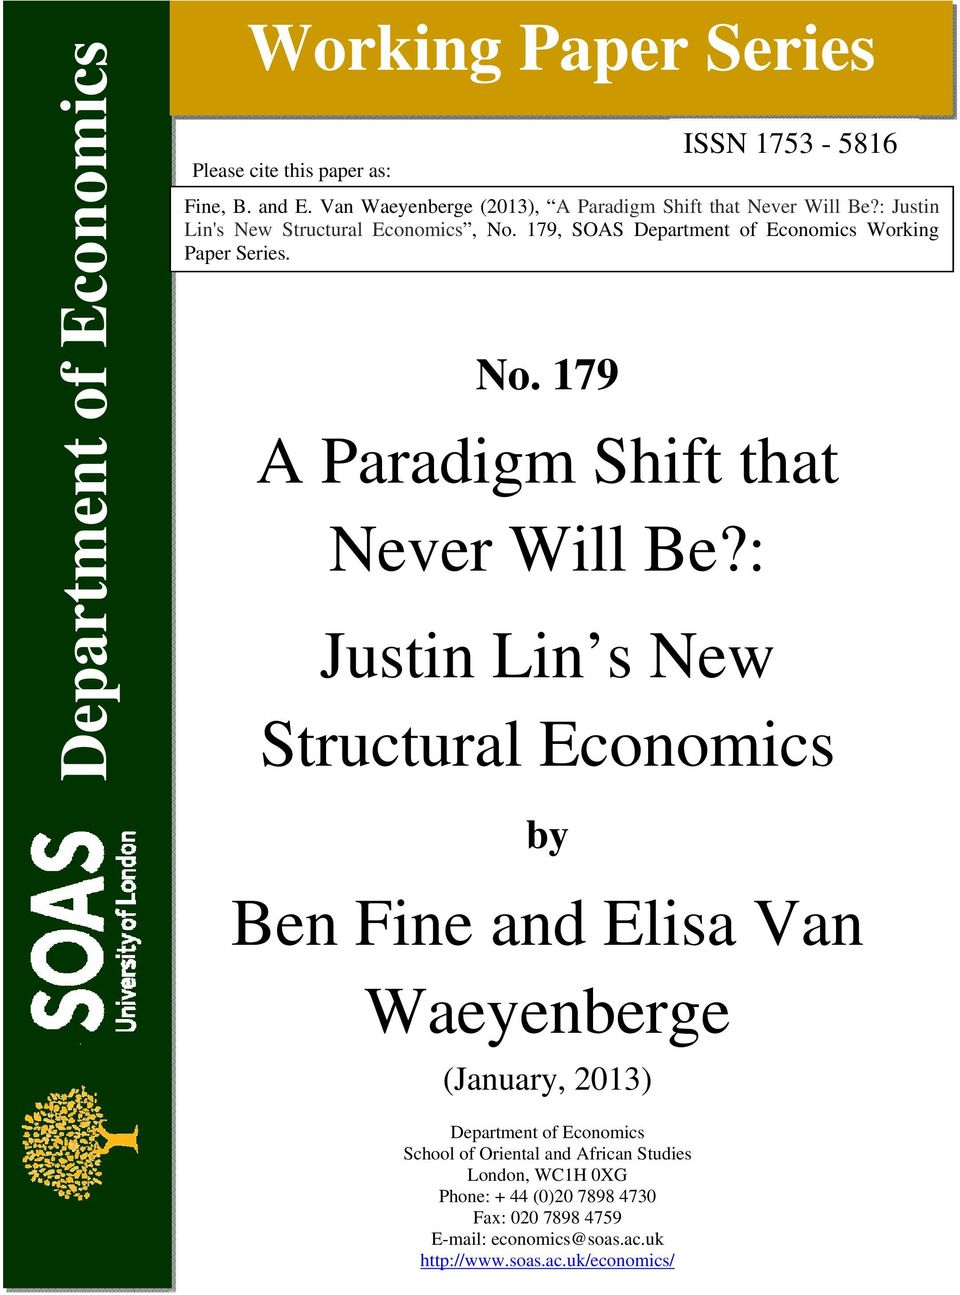 : Justin Lin's New Structural Economics, No. 179, SOAS Department of Economics Working Paper Series.